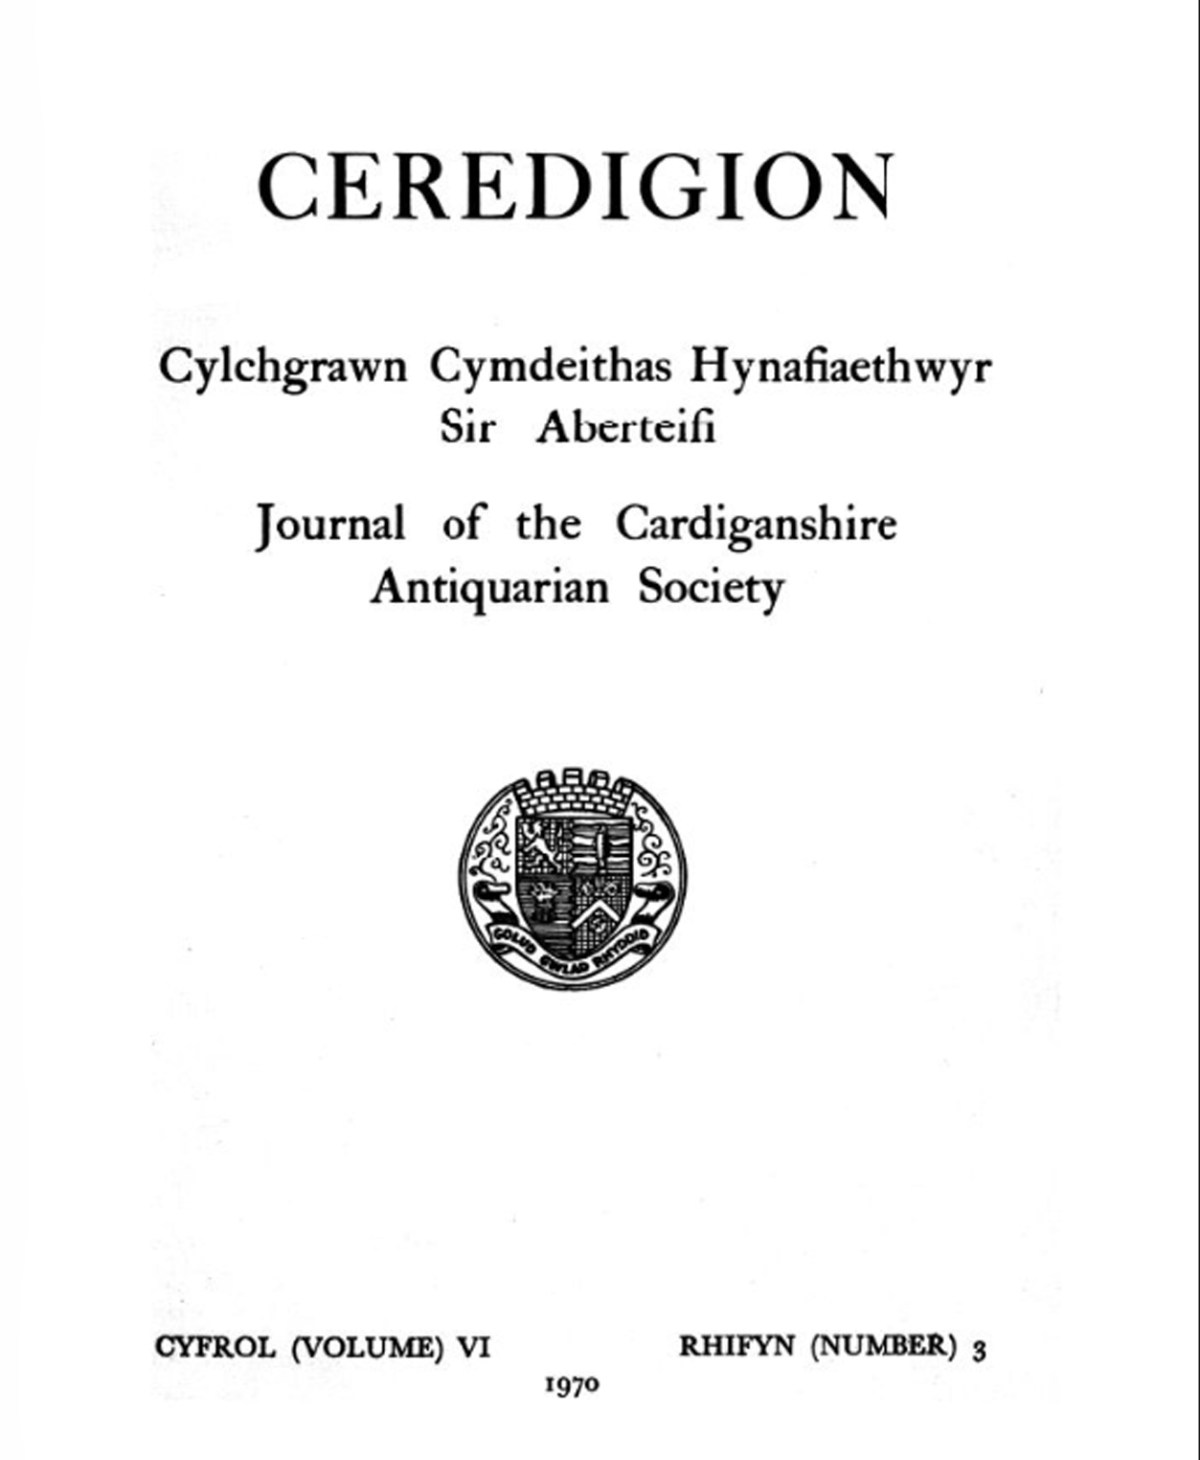 Ceredigion – Journal of the Cardiganshire Antiquarian Society, 1970 Vol VI No 3